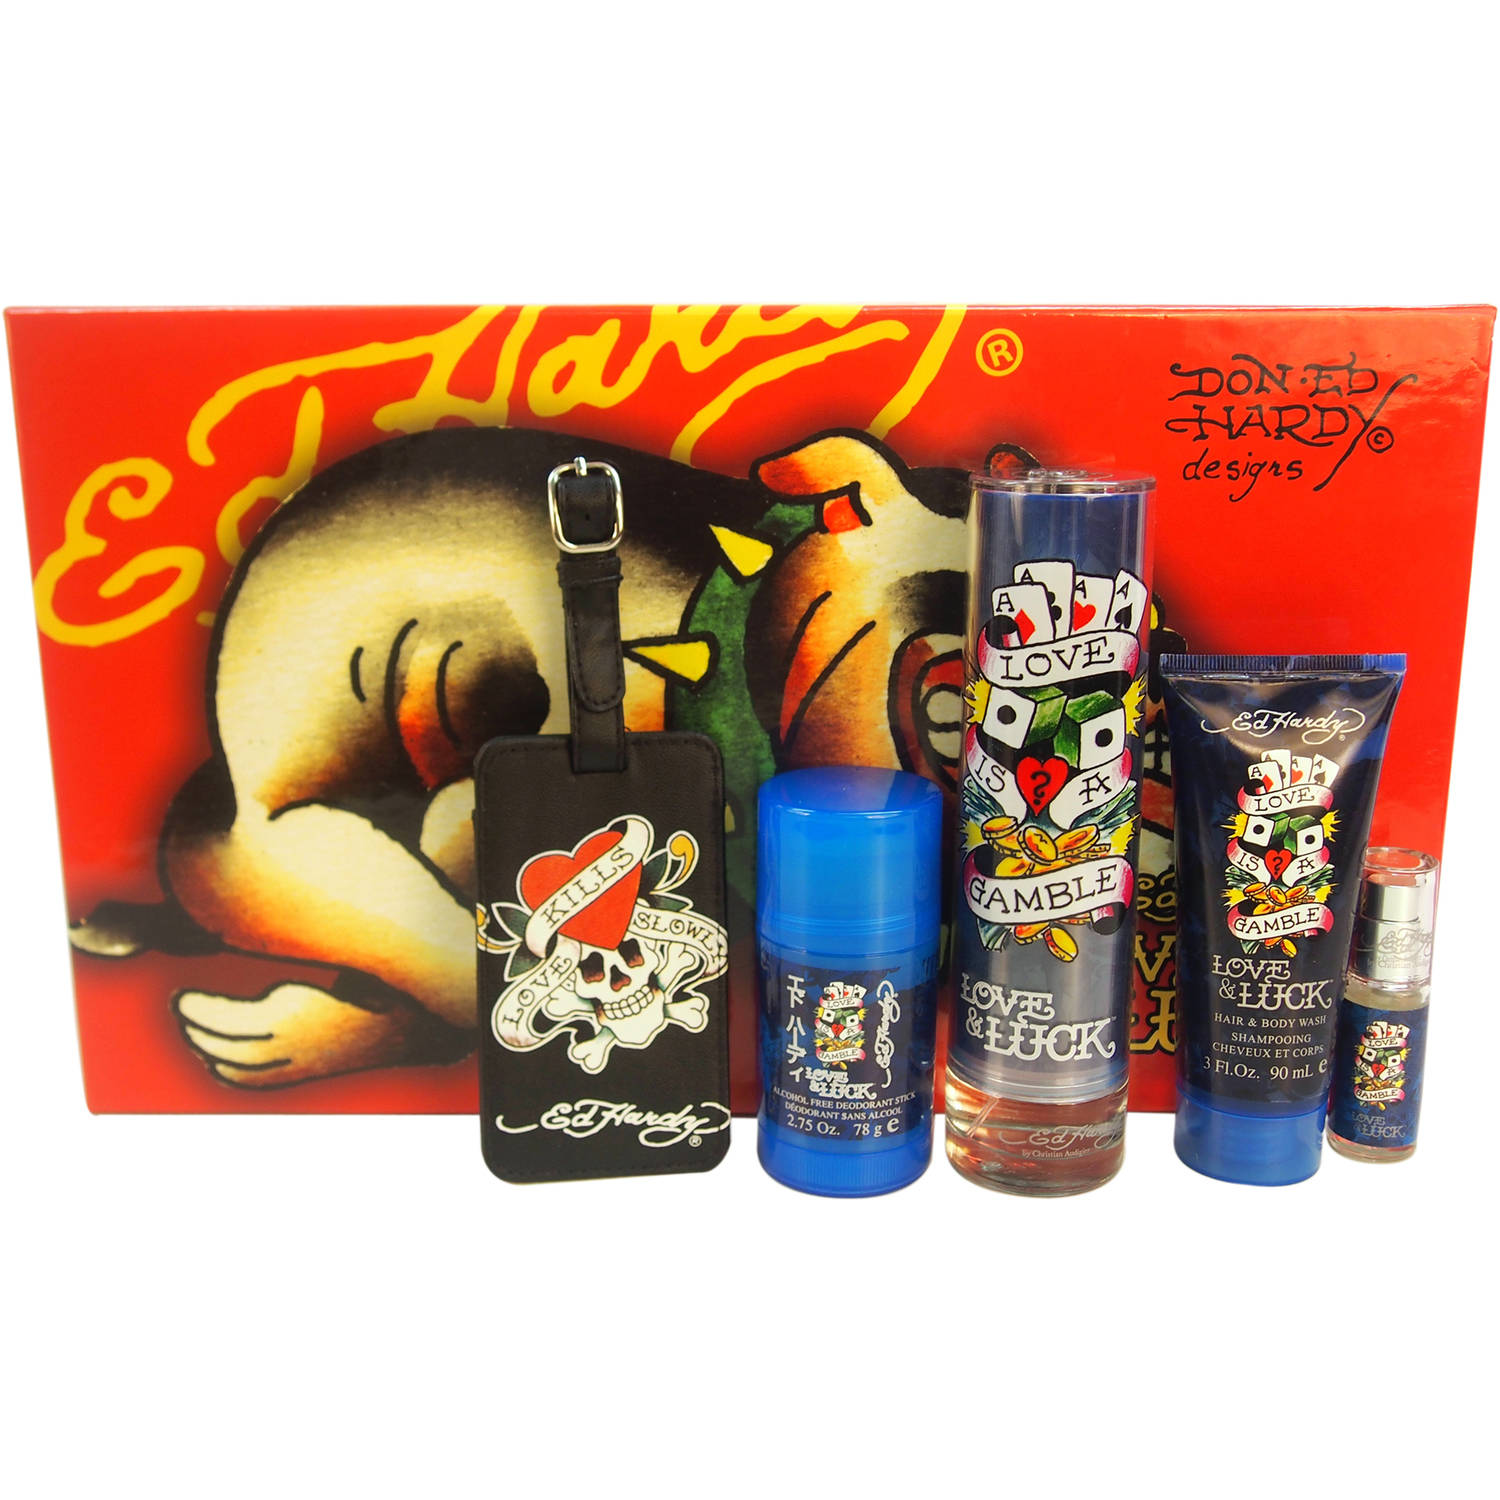 Christian Audigier Ed Hardy Love & Luck for Men Fragrance Gift Set, 5 pc